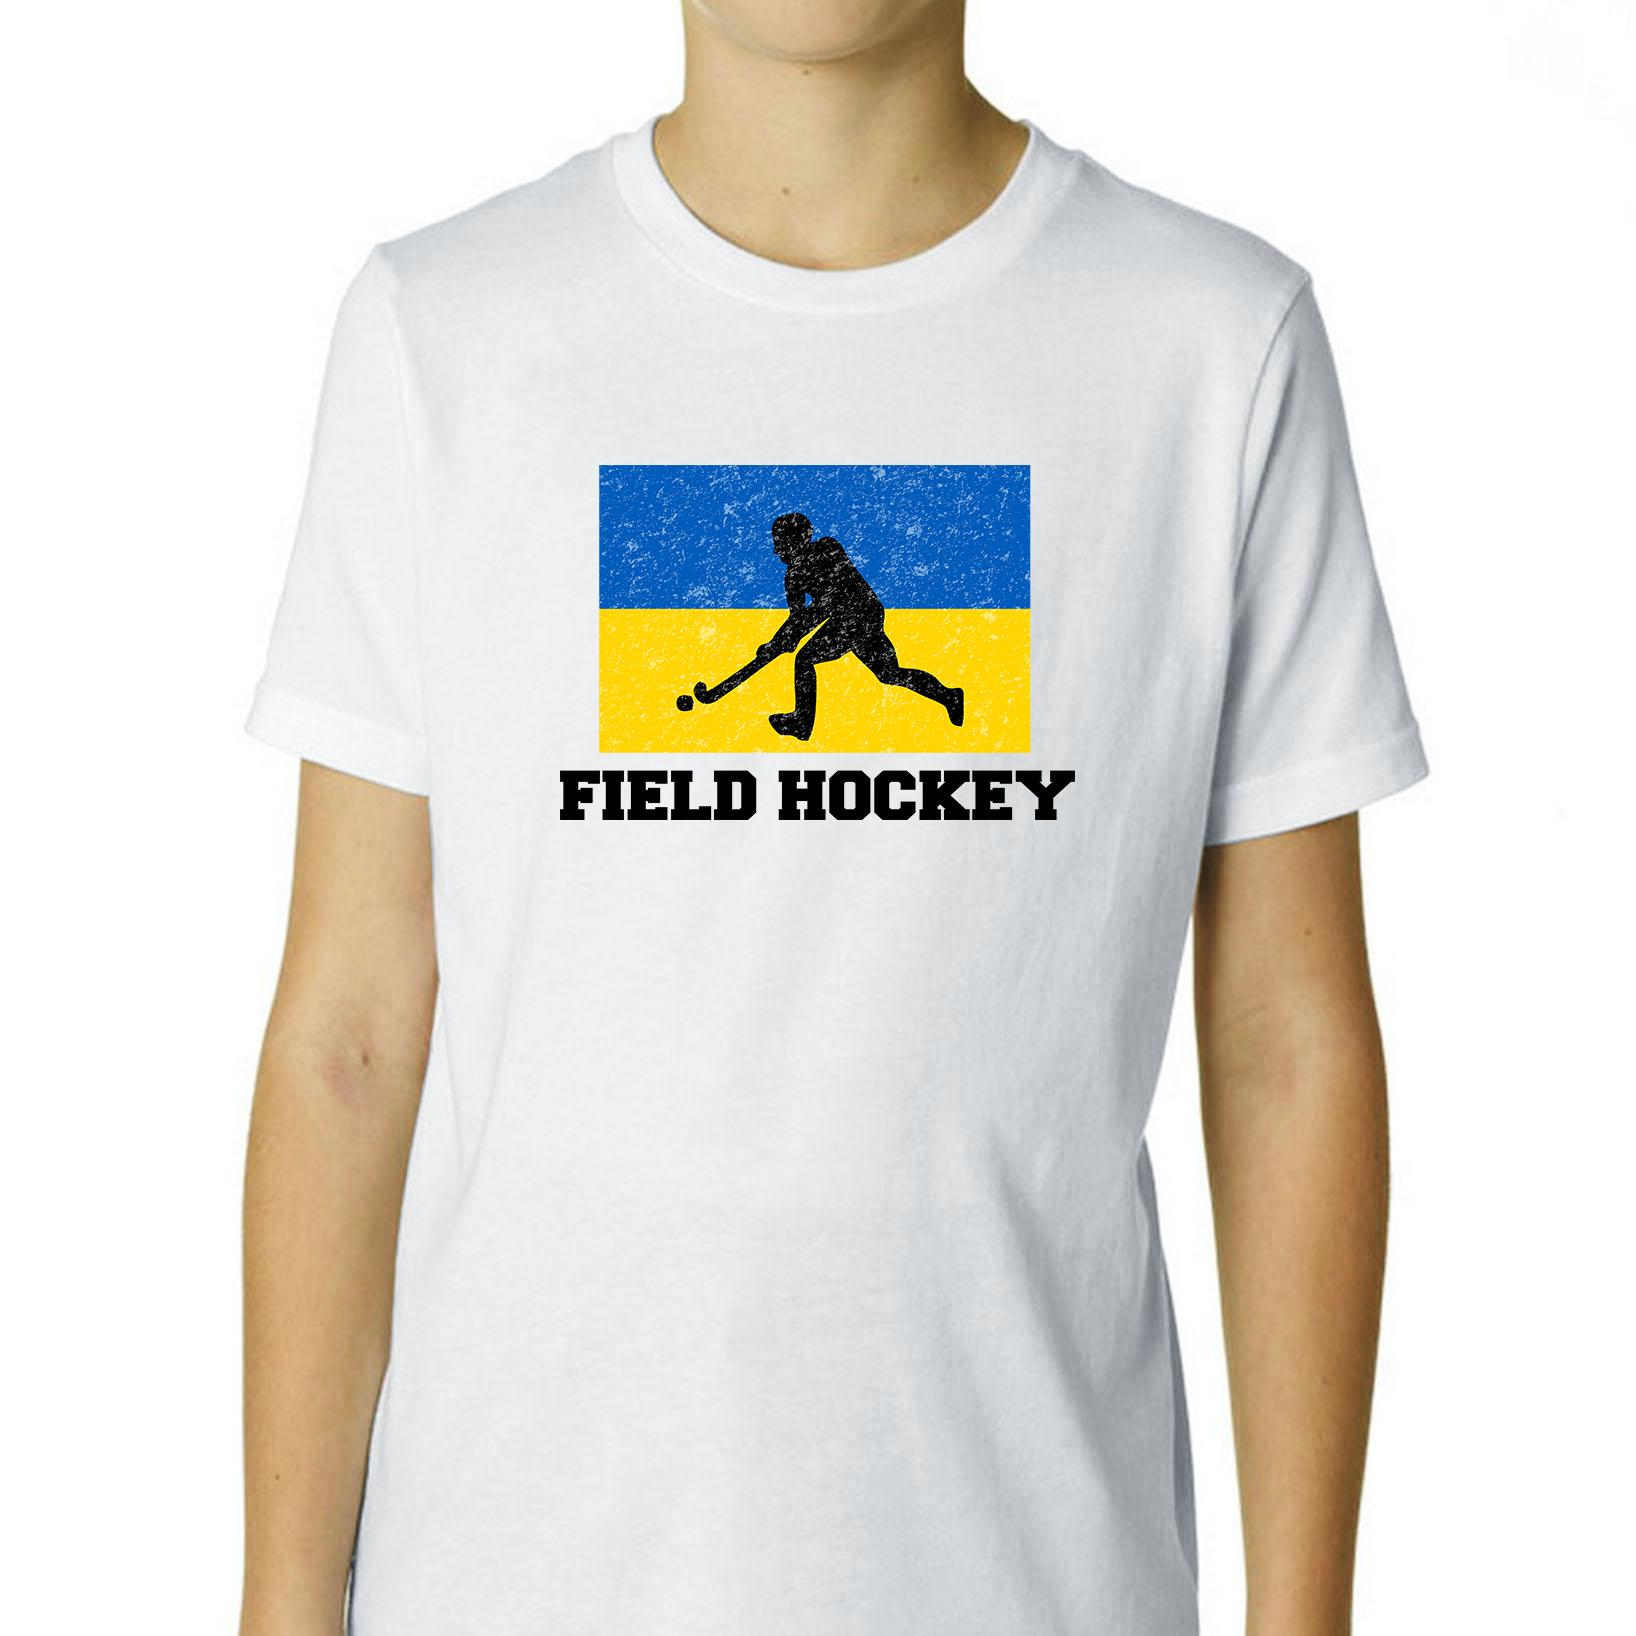 Ukraine Olympic Field Hockey Flag Silhouette Boy's Cotton Youth T-Shirt by Hollywood Thread